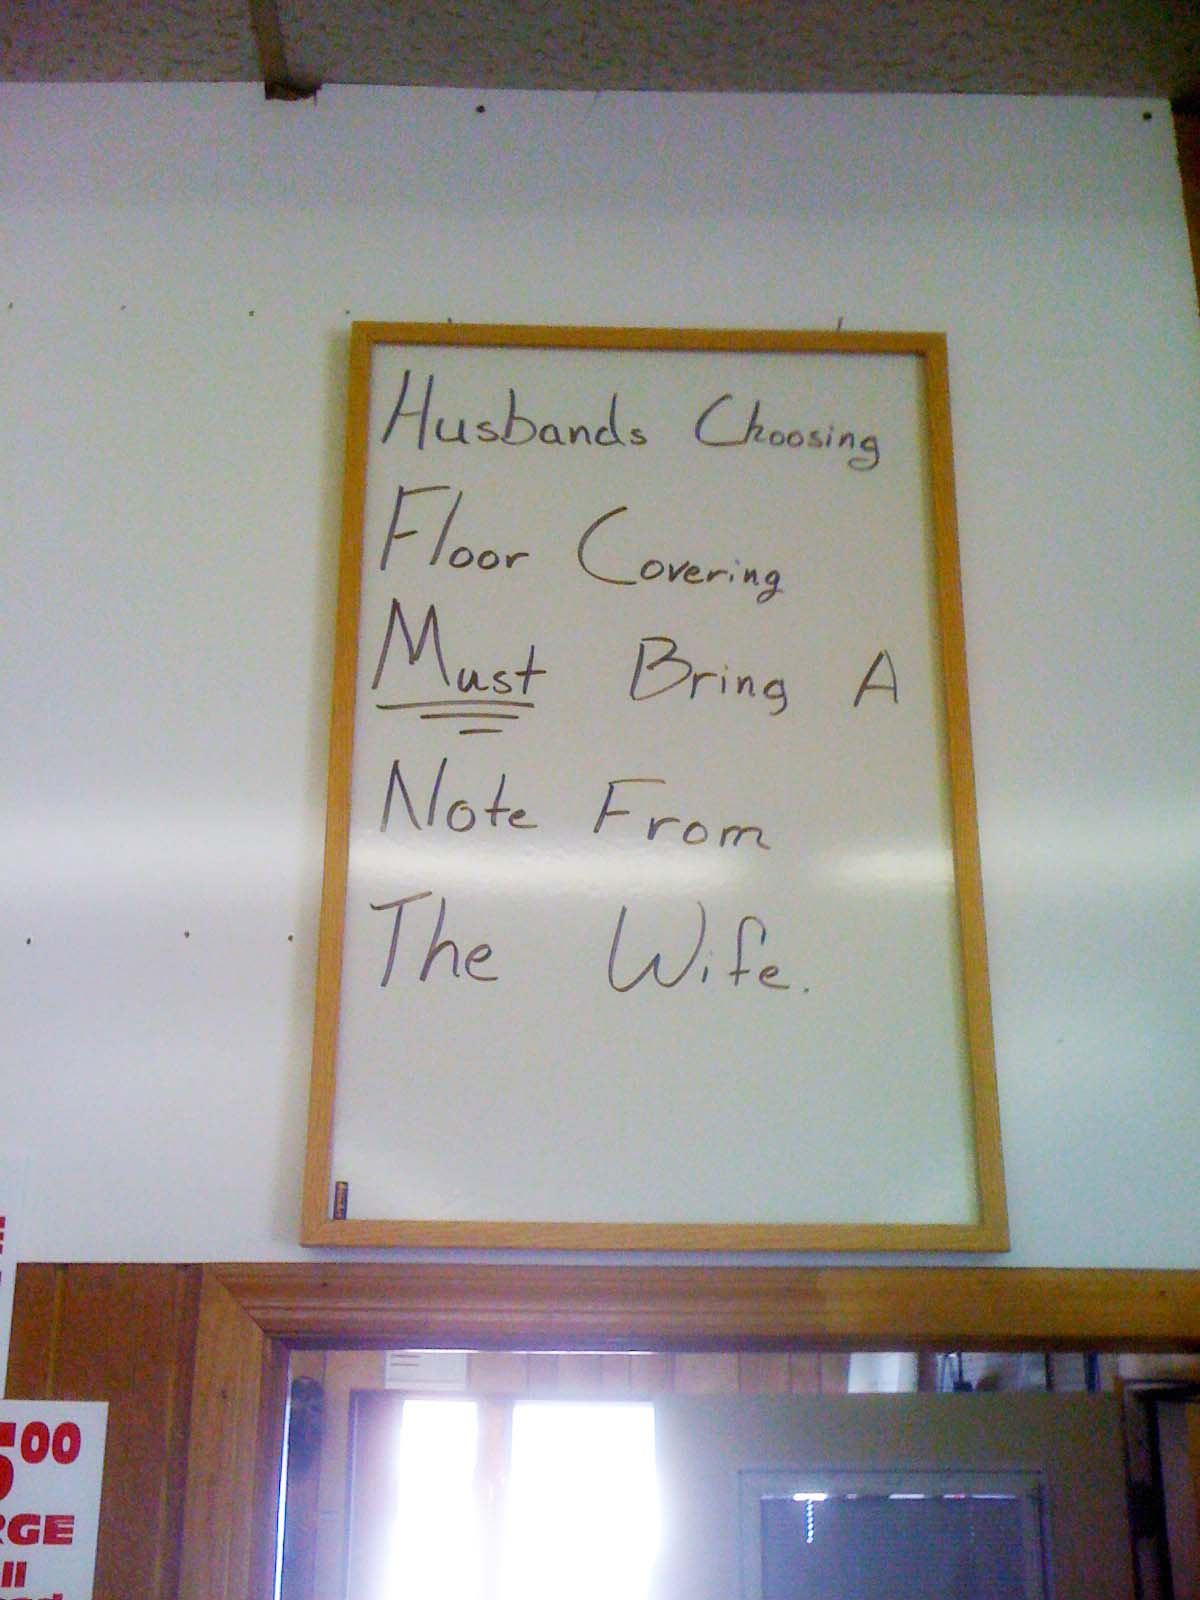 Note to wife